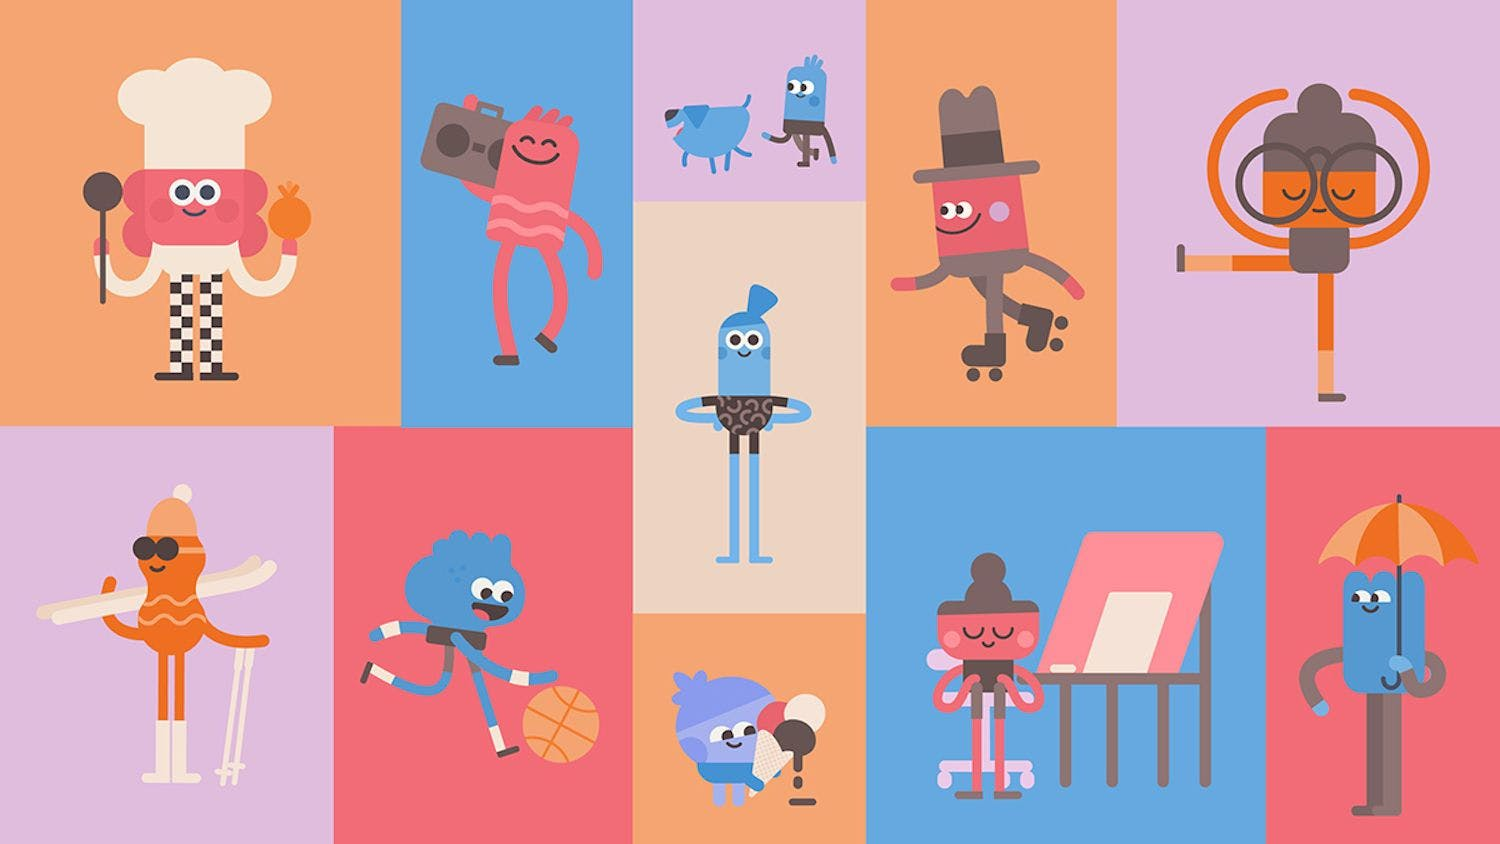 Headspace's animations have a distinctive style which many users will find visually appealing